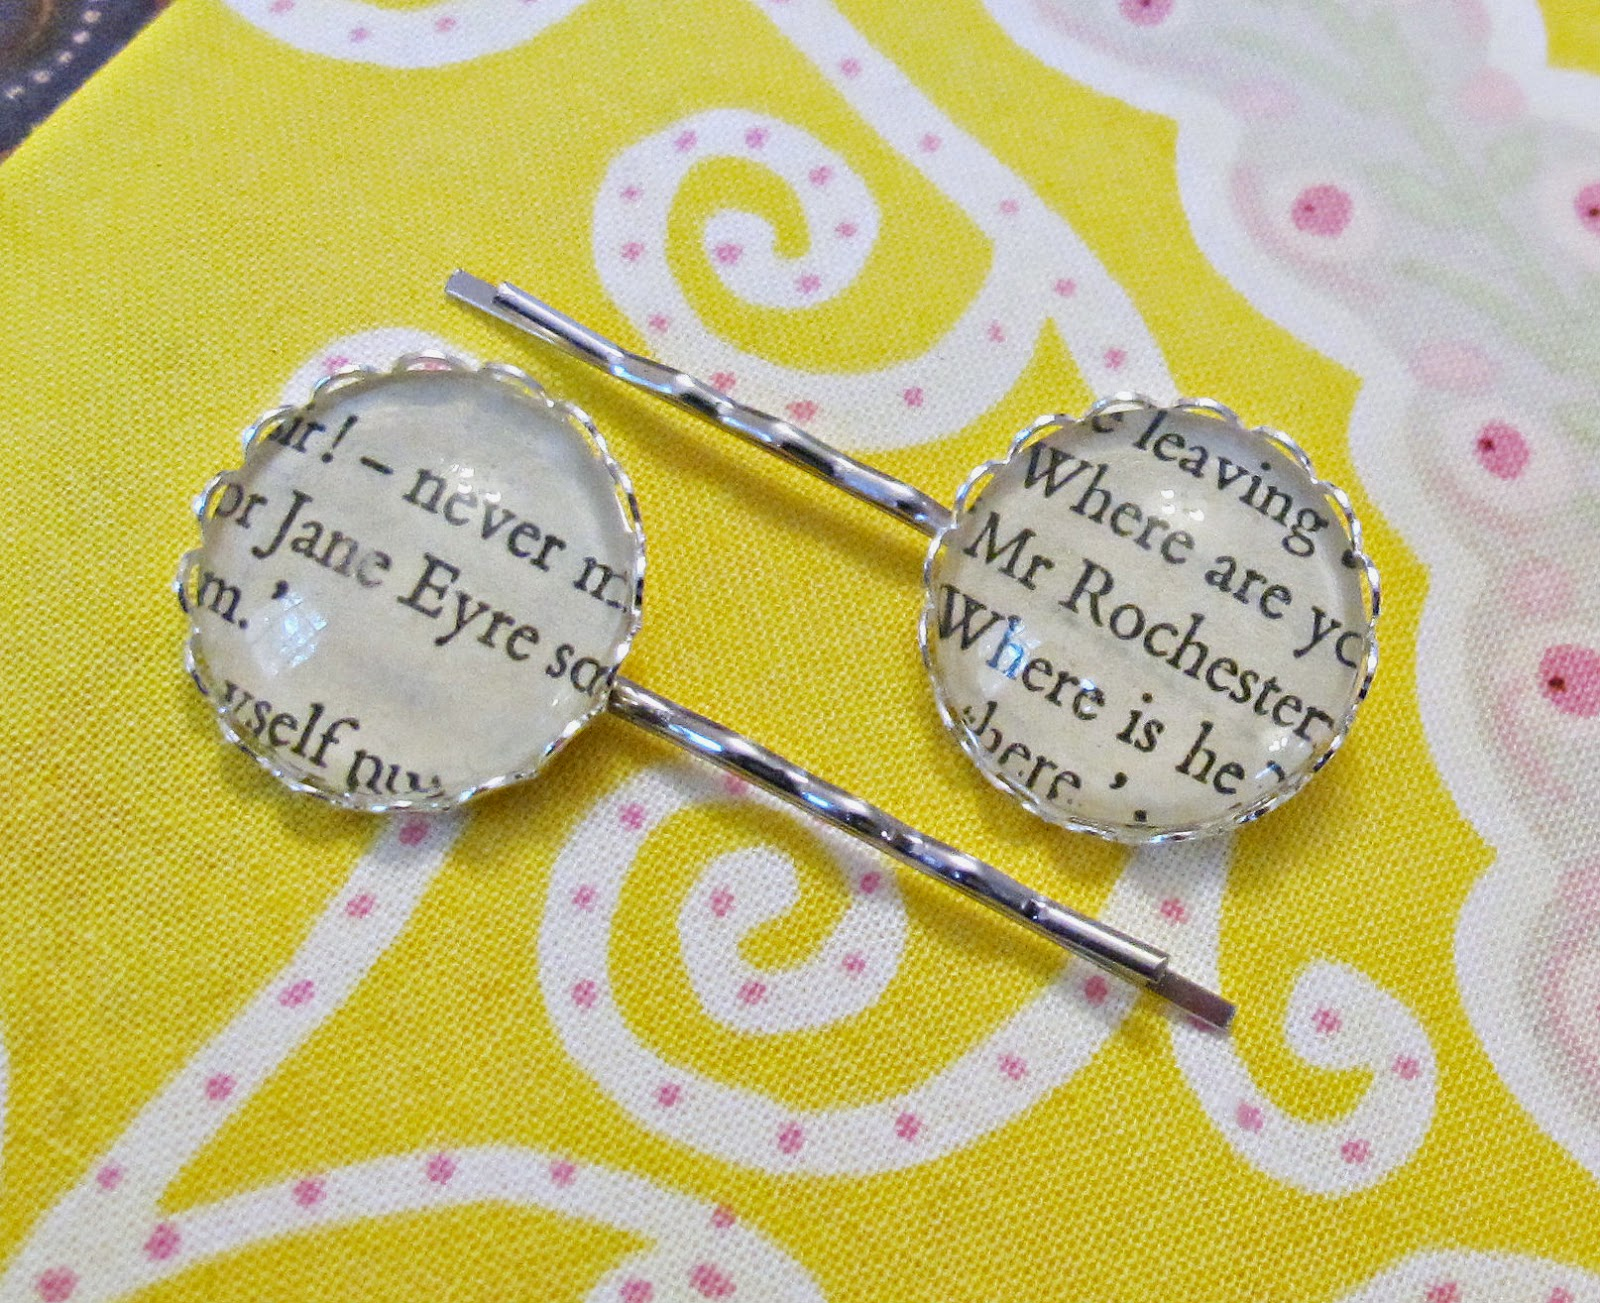 image jane eyre bobby pin set hair mr rochester charlotte bronte silver bridal wedding two cheeky monkeys accessories